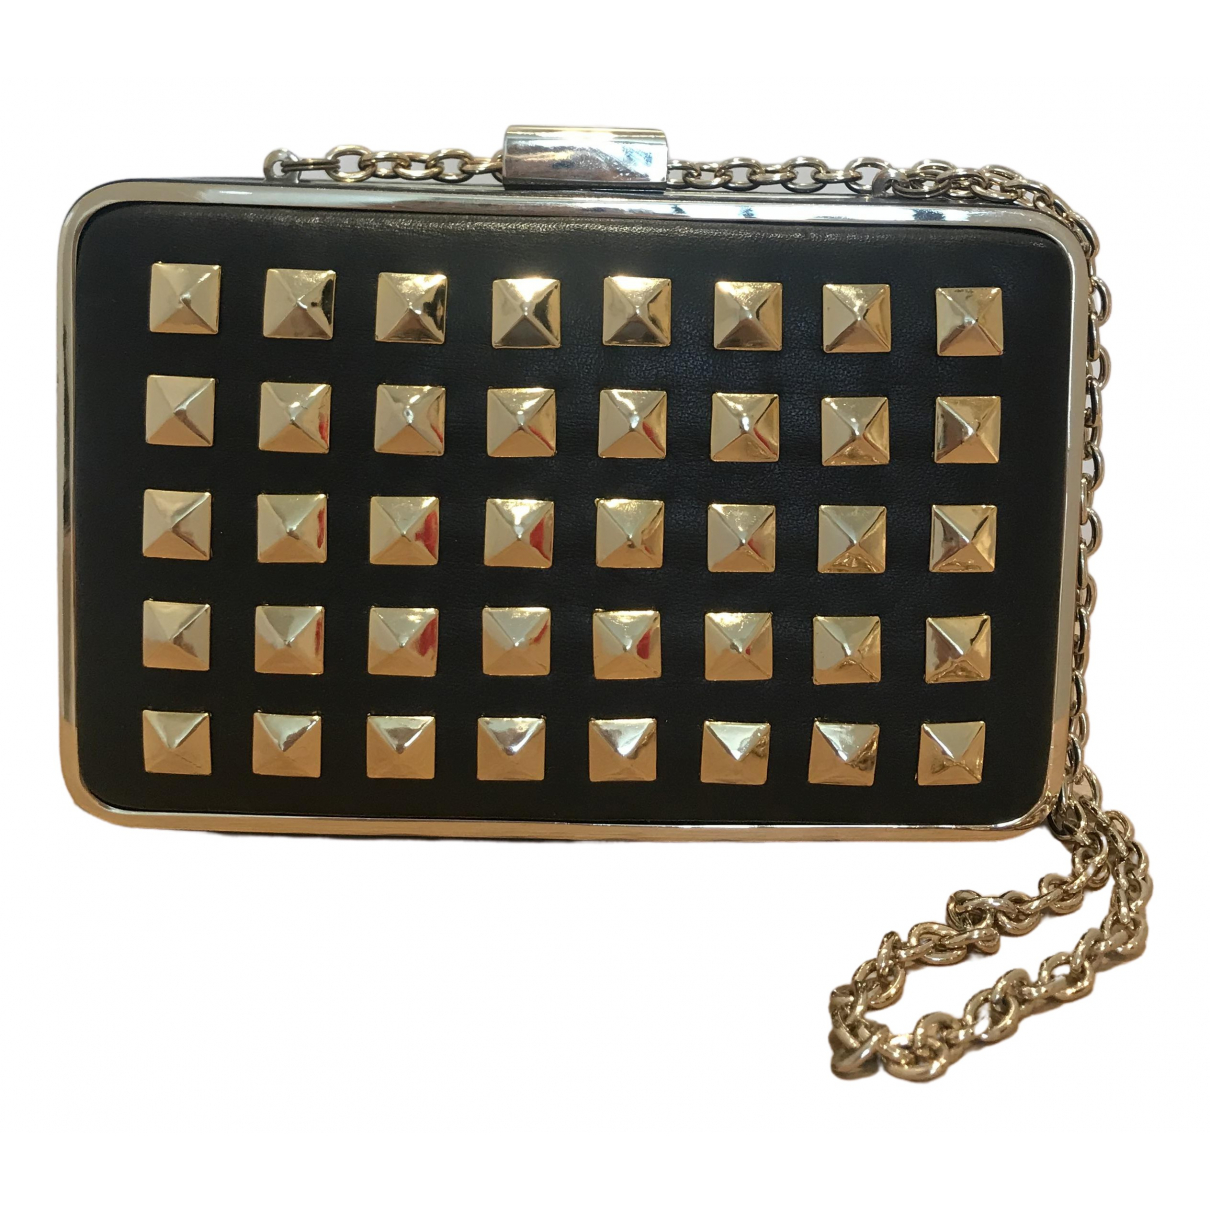 Coccinelle \N Black Leather Clutch bag for Women \N